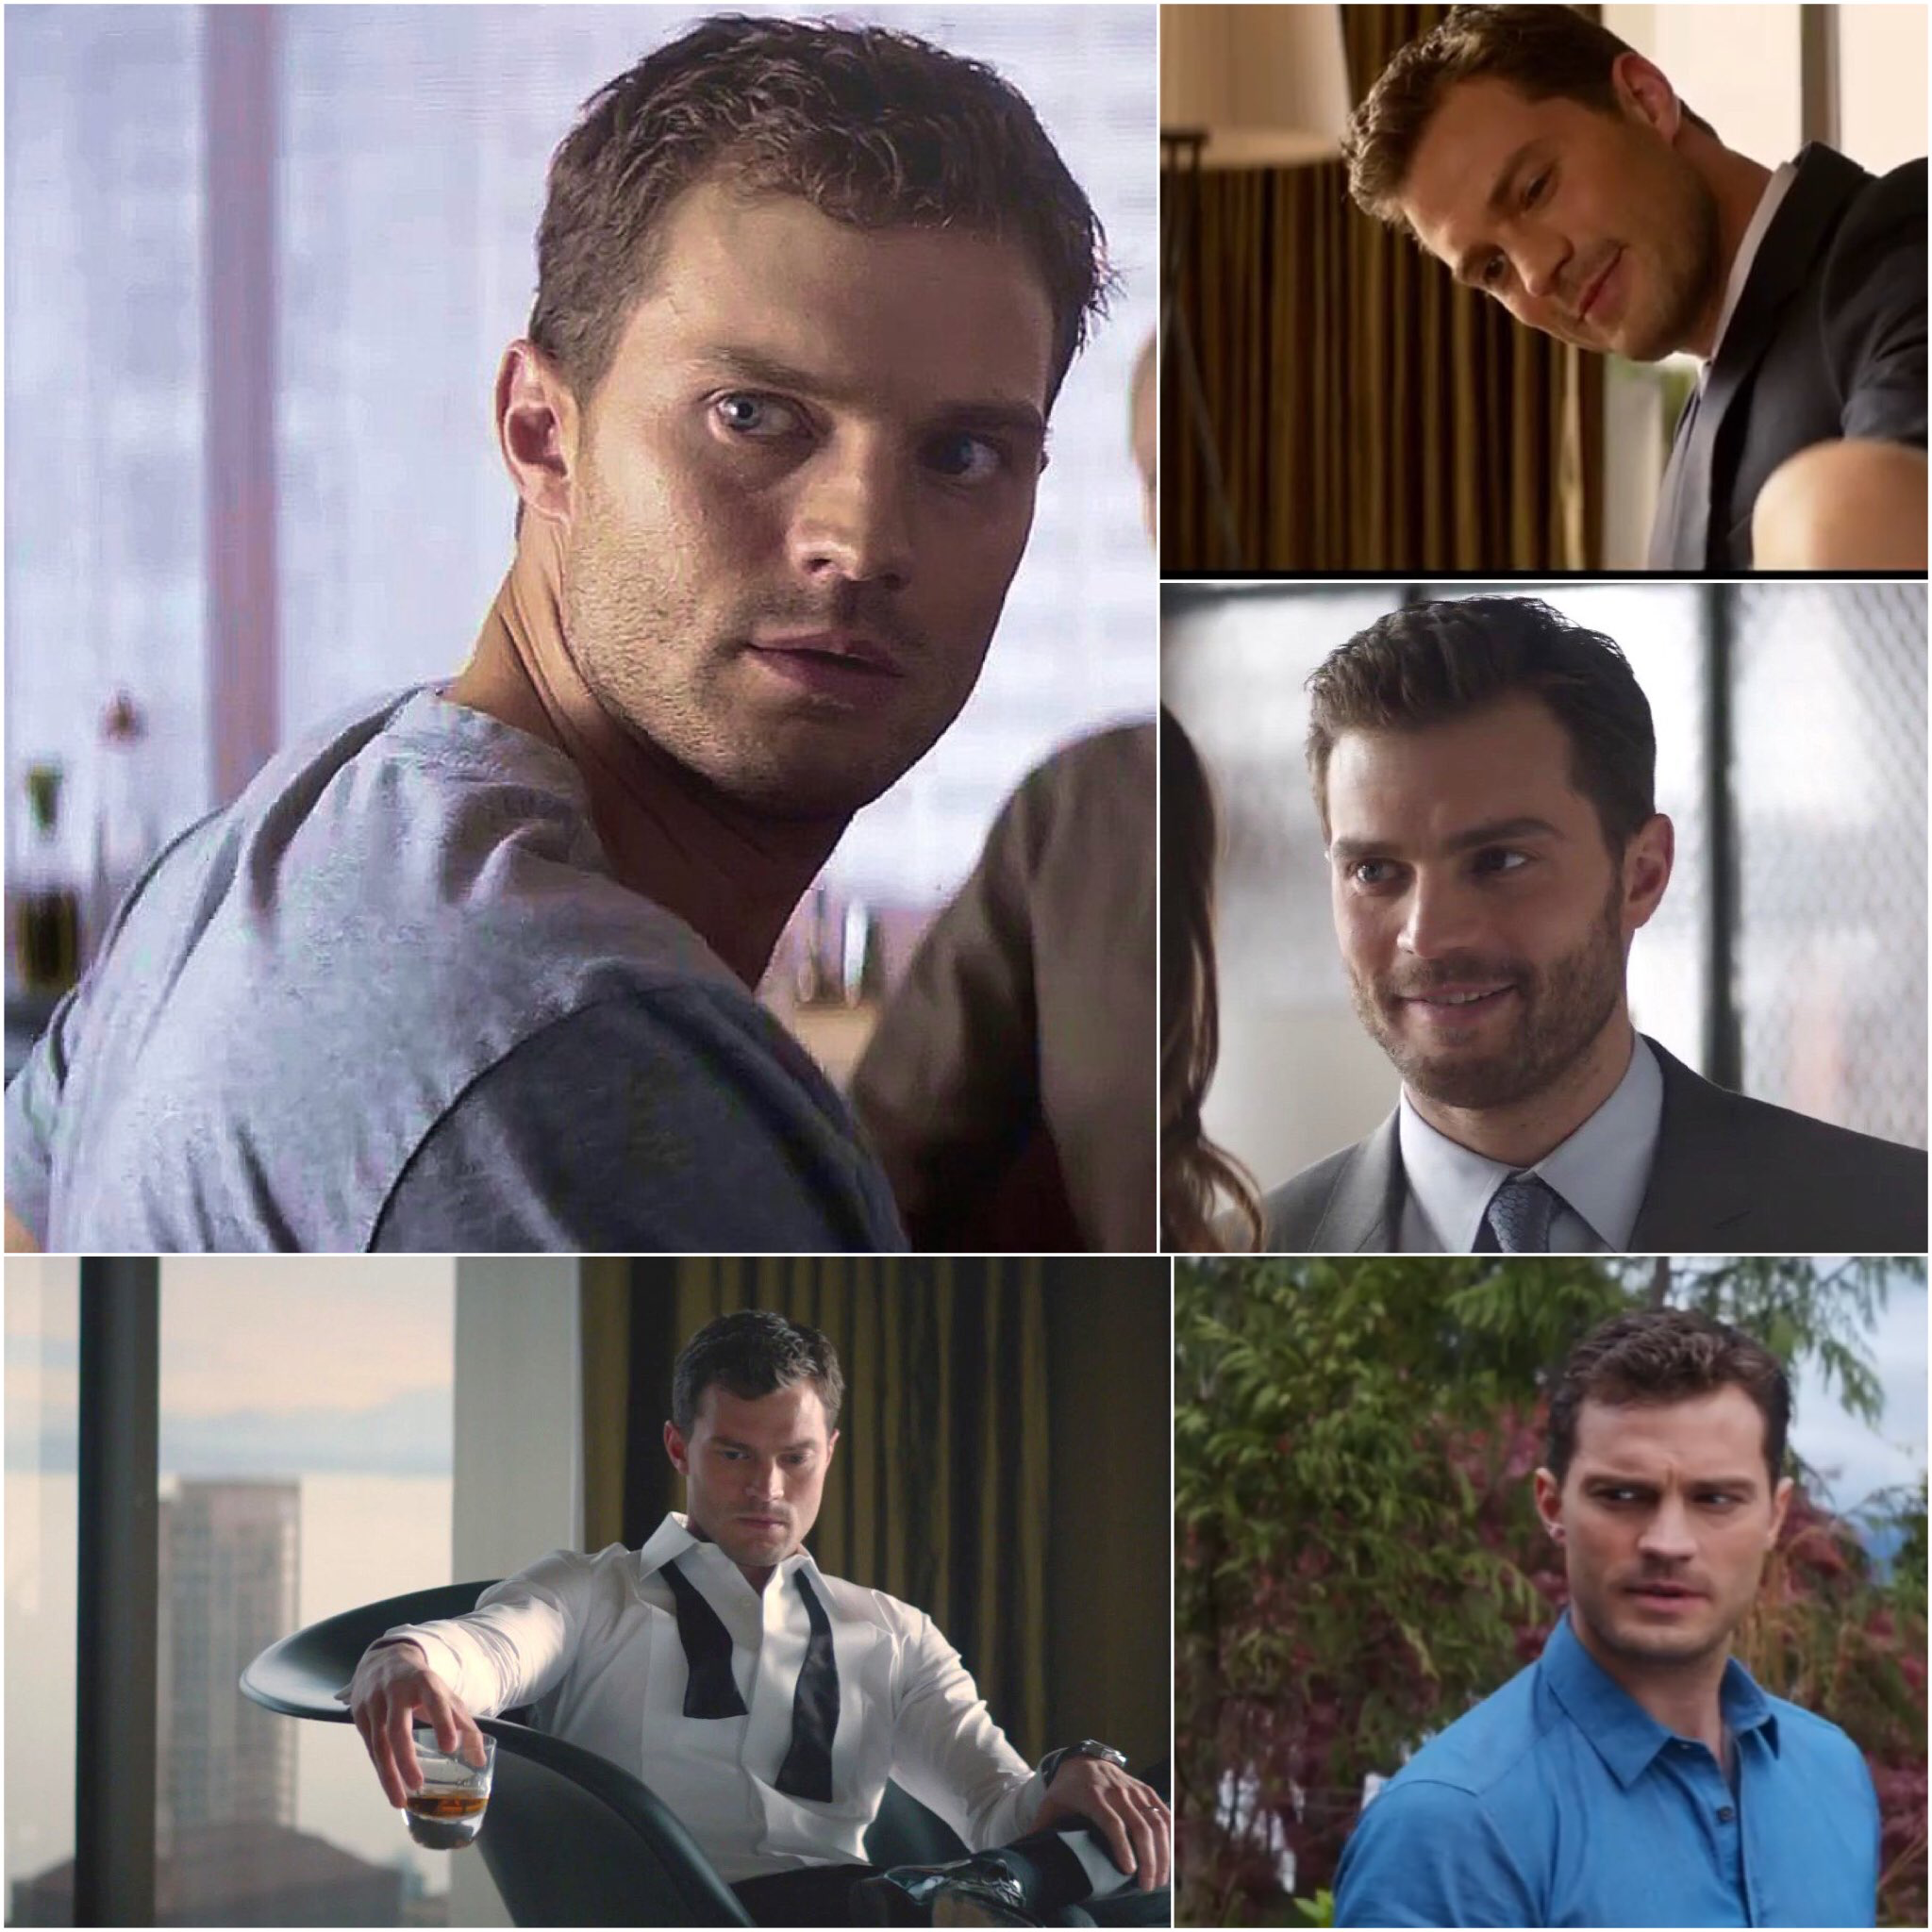 Pin by G on Perfection - Jamie Dornan | Christian grey